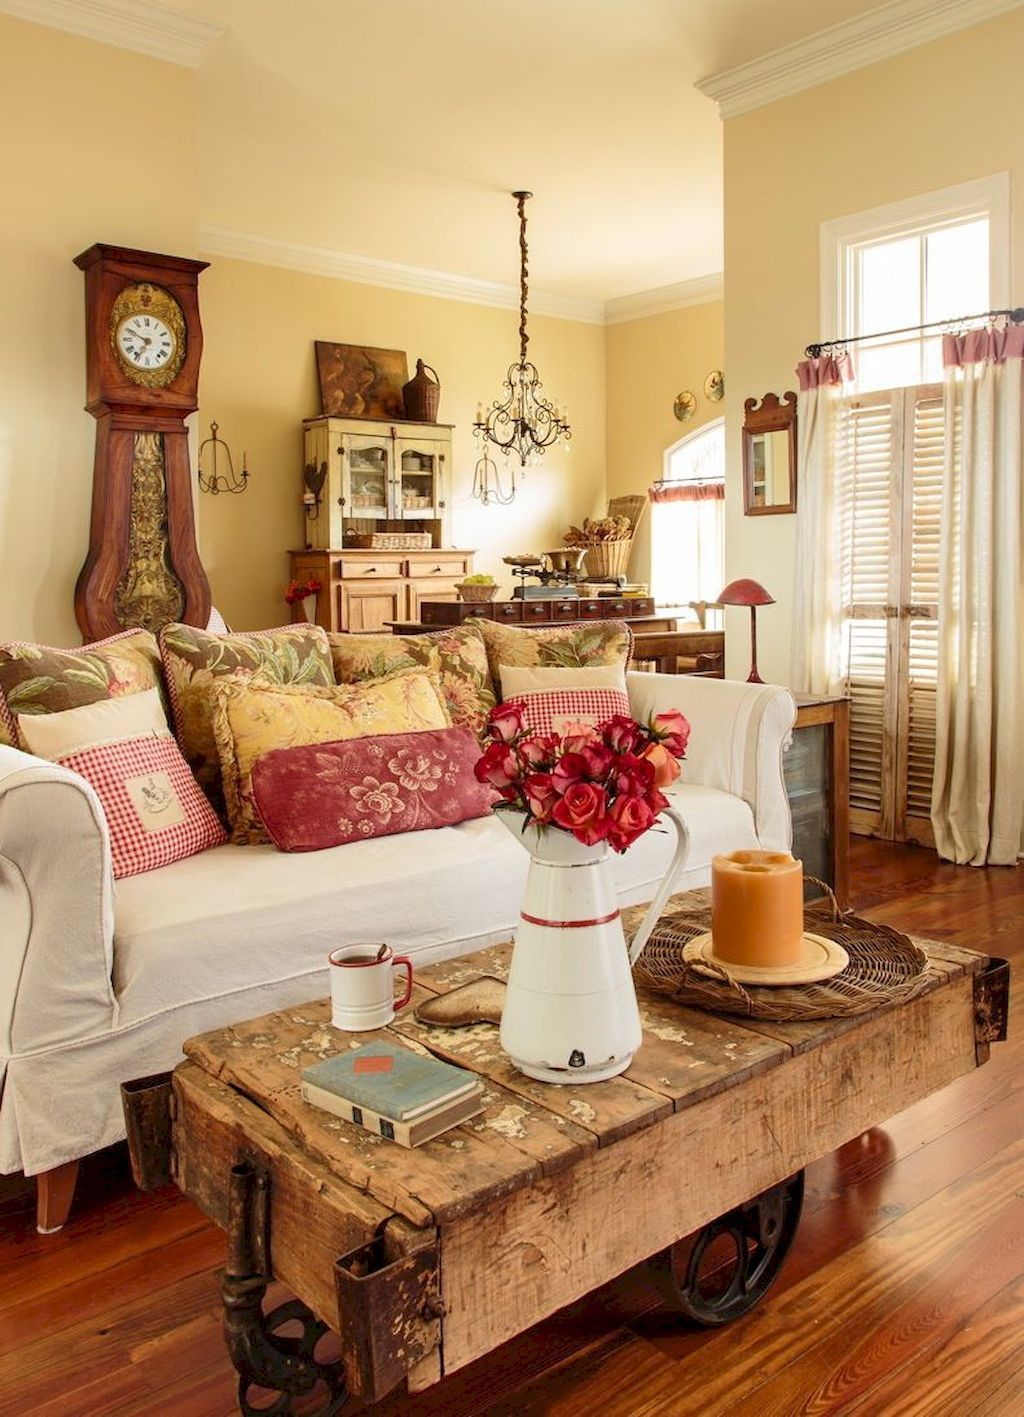 52 Fancy French Country Living Room Decor Ideas Living Room Decor Country French Country Decorating Living Room Country Style Living Room